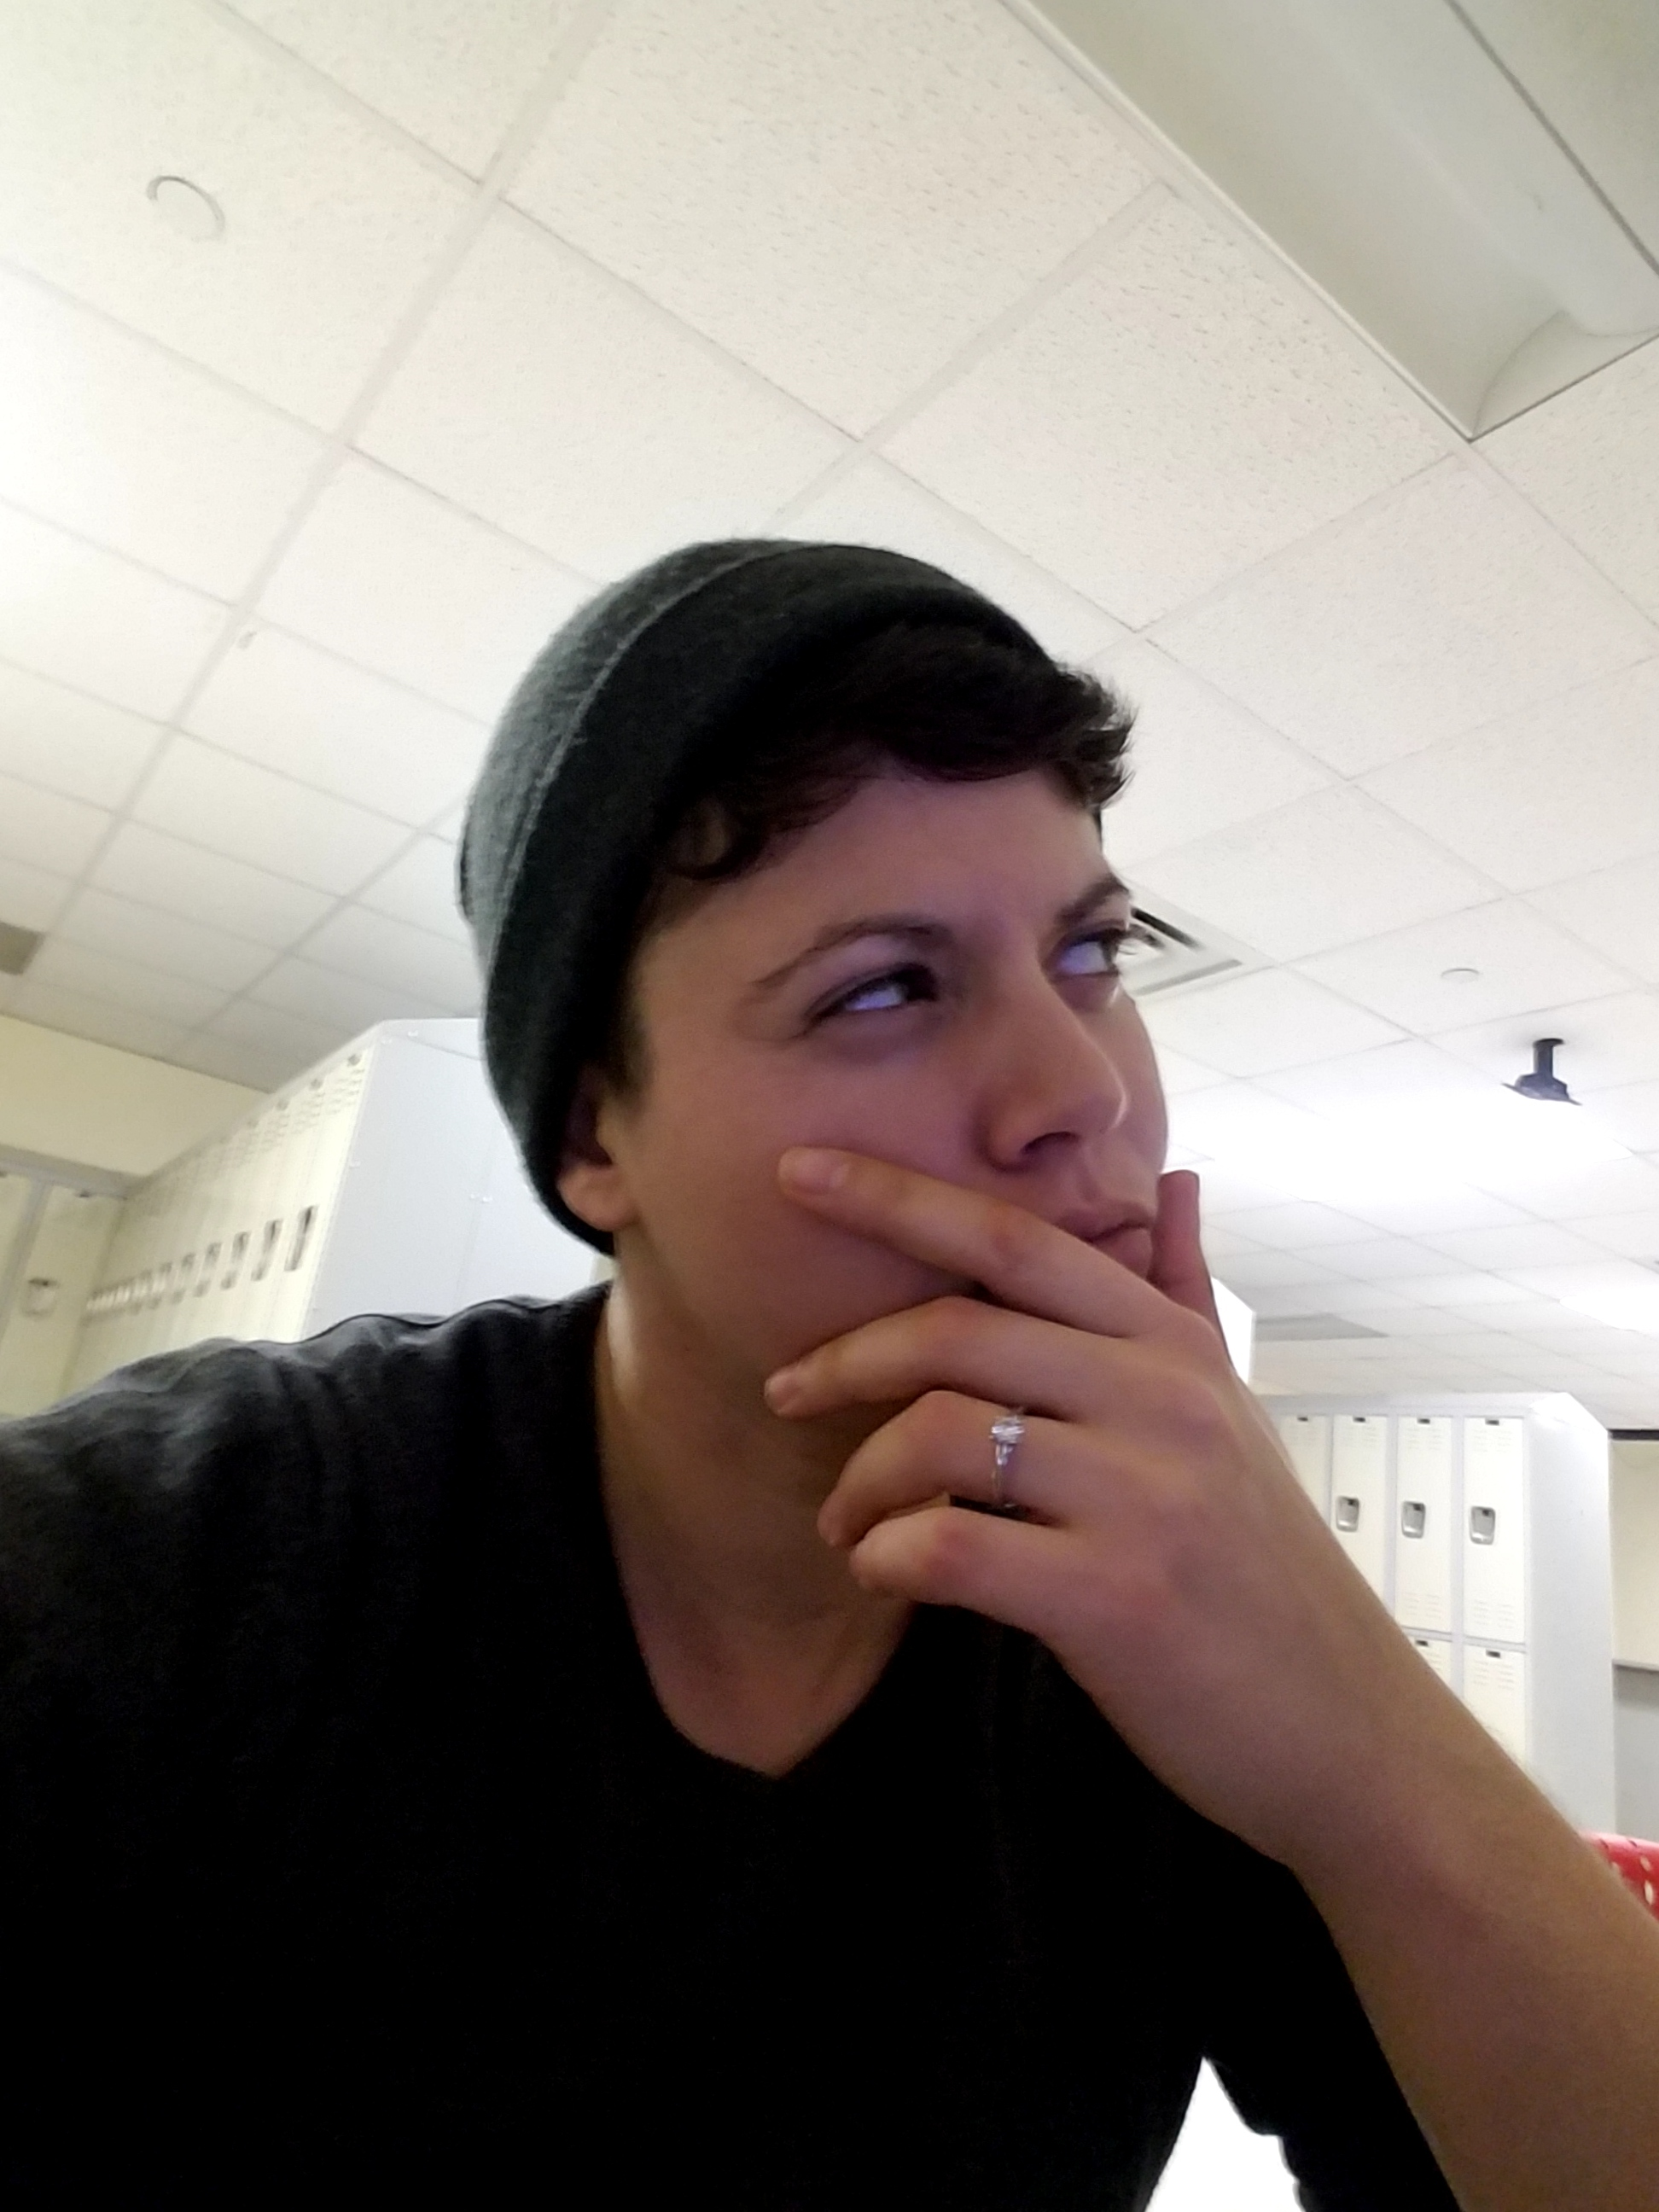 A white enby with short, dark brown hair (me!!) strokes their chin, looking up and away in concentration. They are wearing a grey-green beanie and a grey sweater.